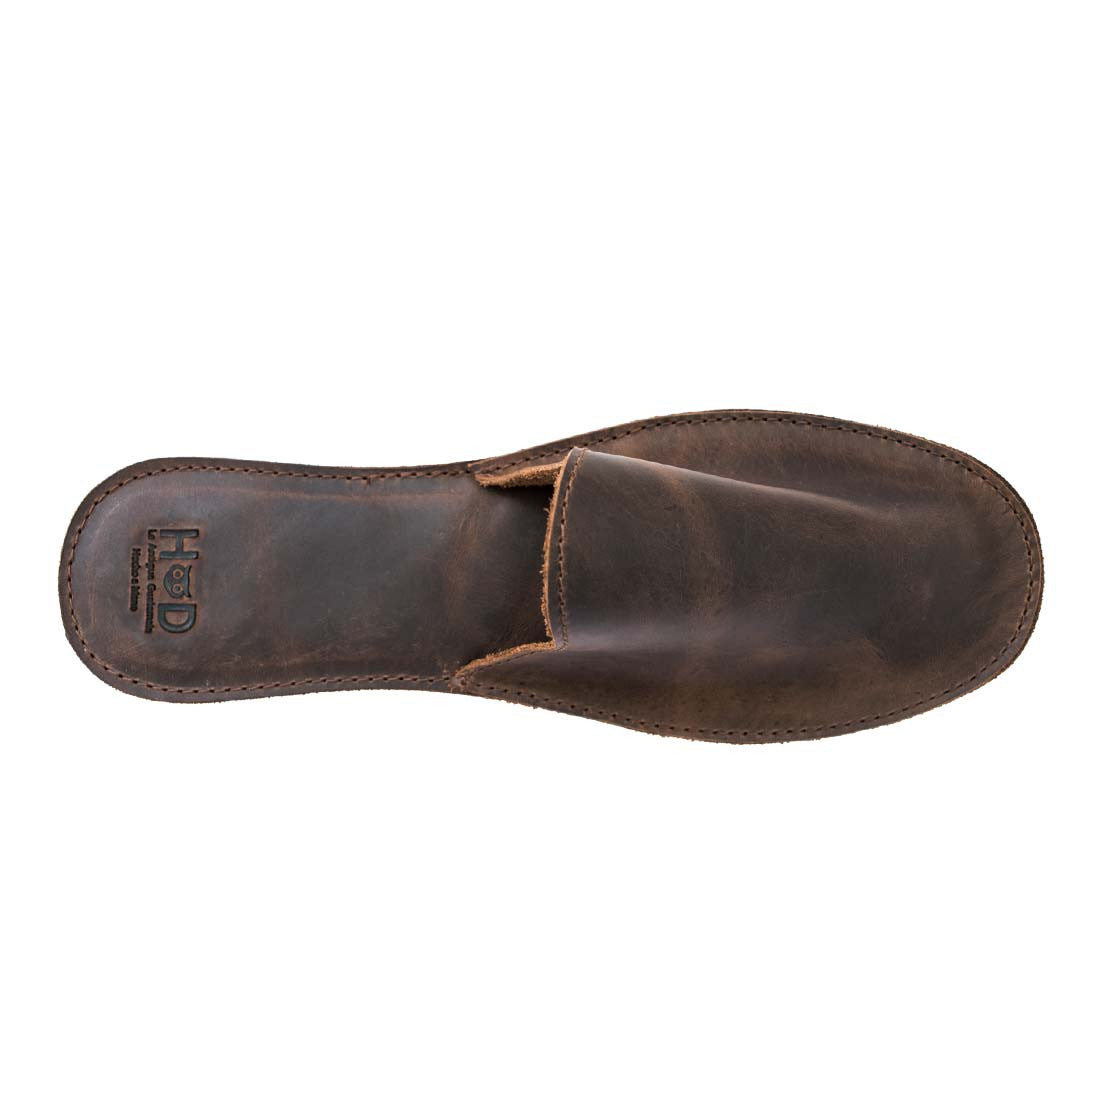 d356f3a998d0 Leather House Slippers - Hide   Drink